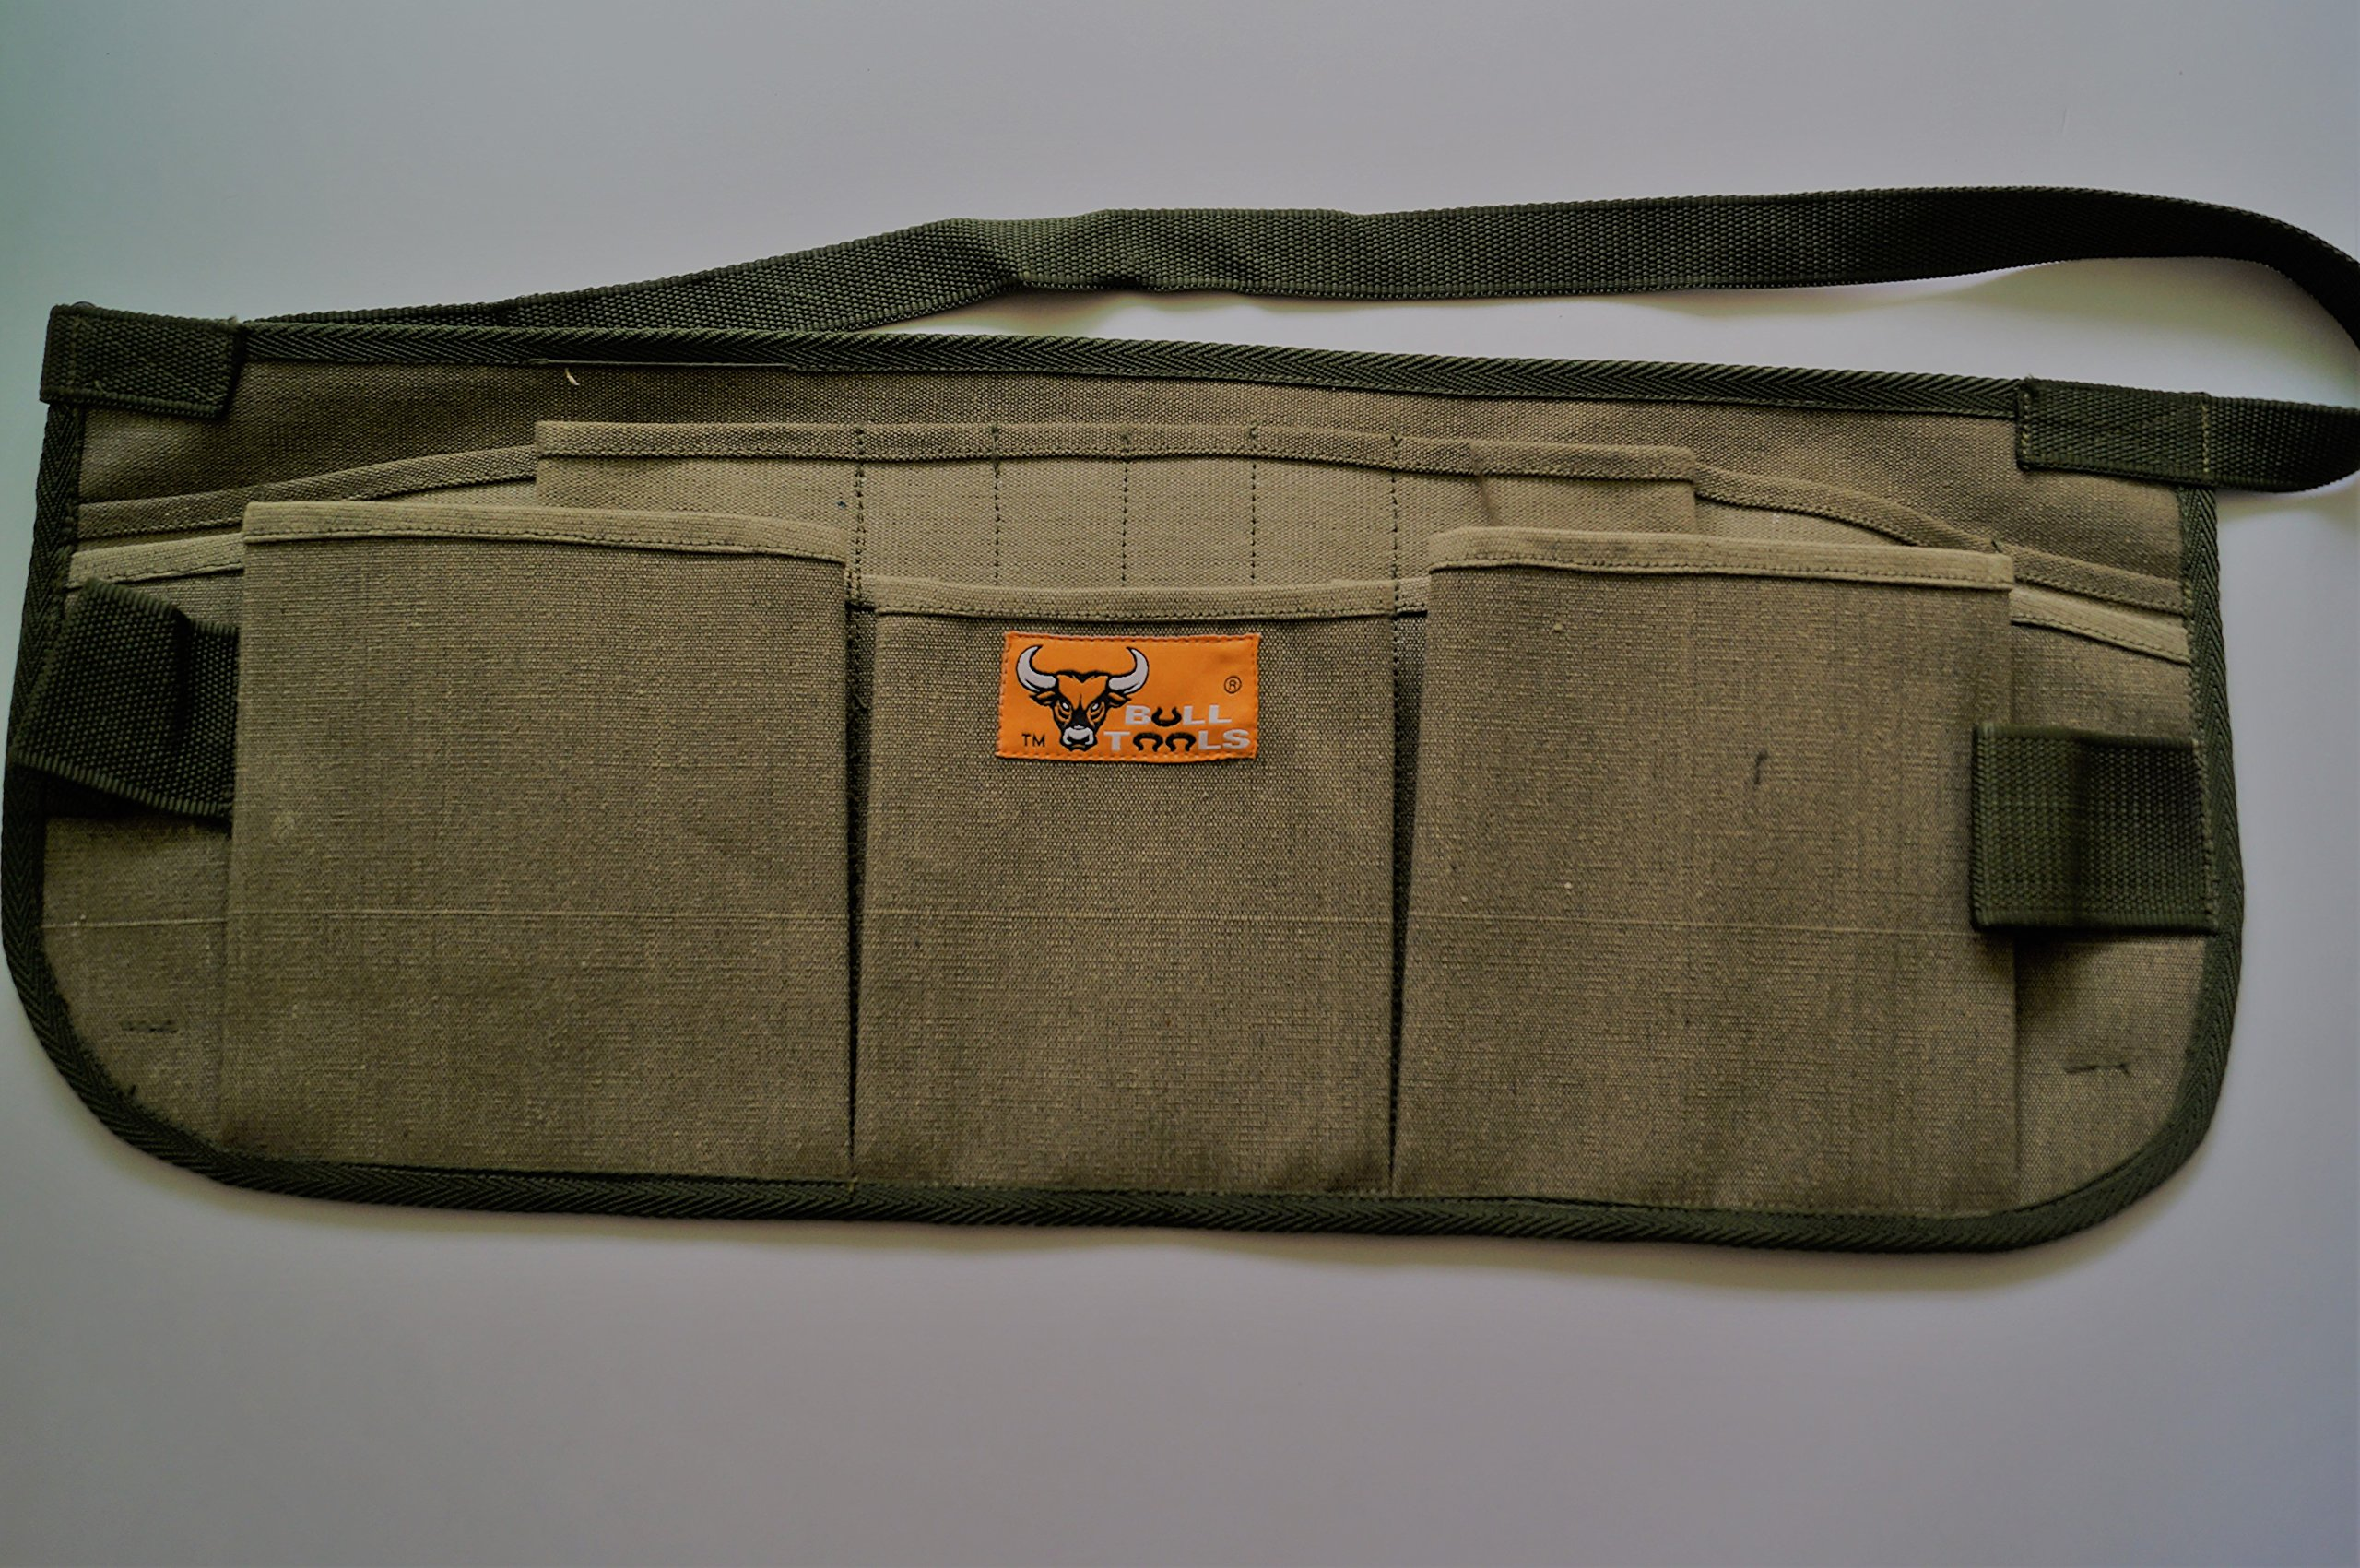 Bull Tools BT 1004 Heavy Weight 15 Oz. Dyed Duck Cotton Canvas Utility Smart Tool Waist Apron 13 Pocket Washed Olive Drab